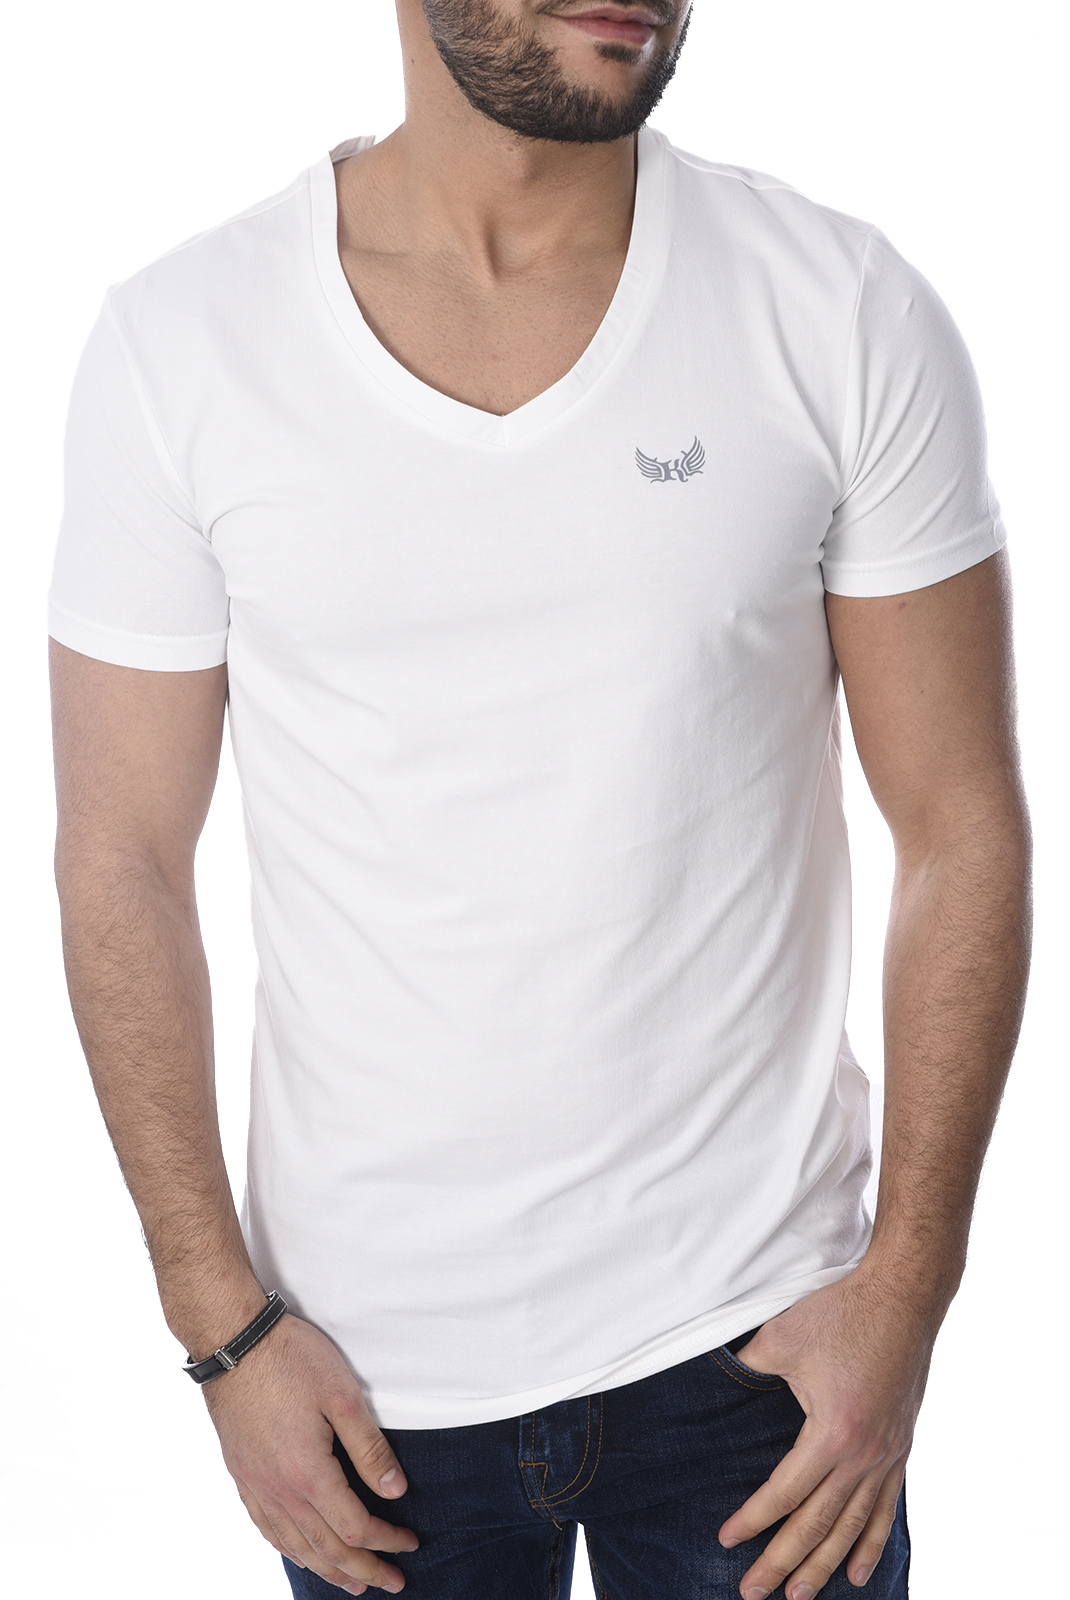 KAPORAL PACK DE 2 T-SHIRTS GIFT ORANGE BLANC HOMME